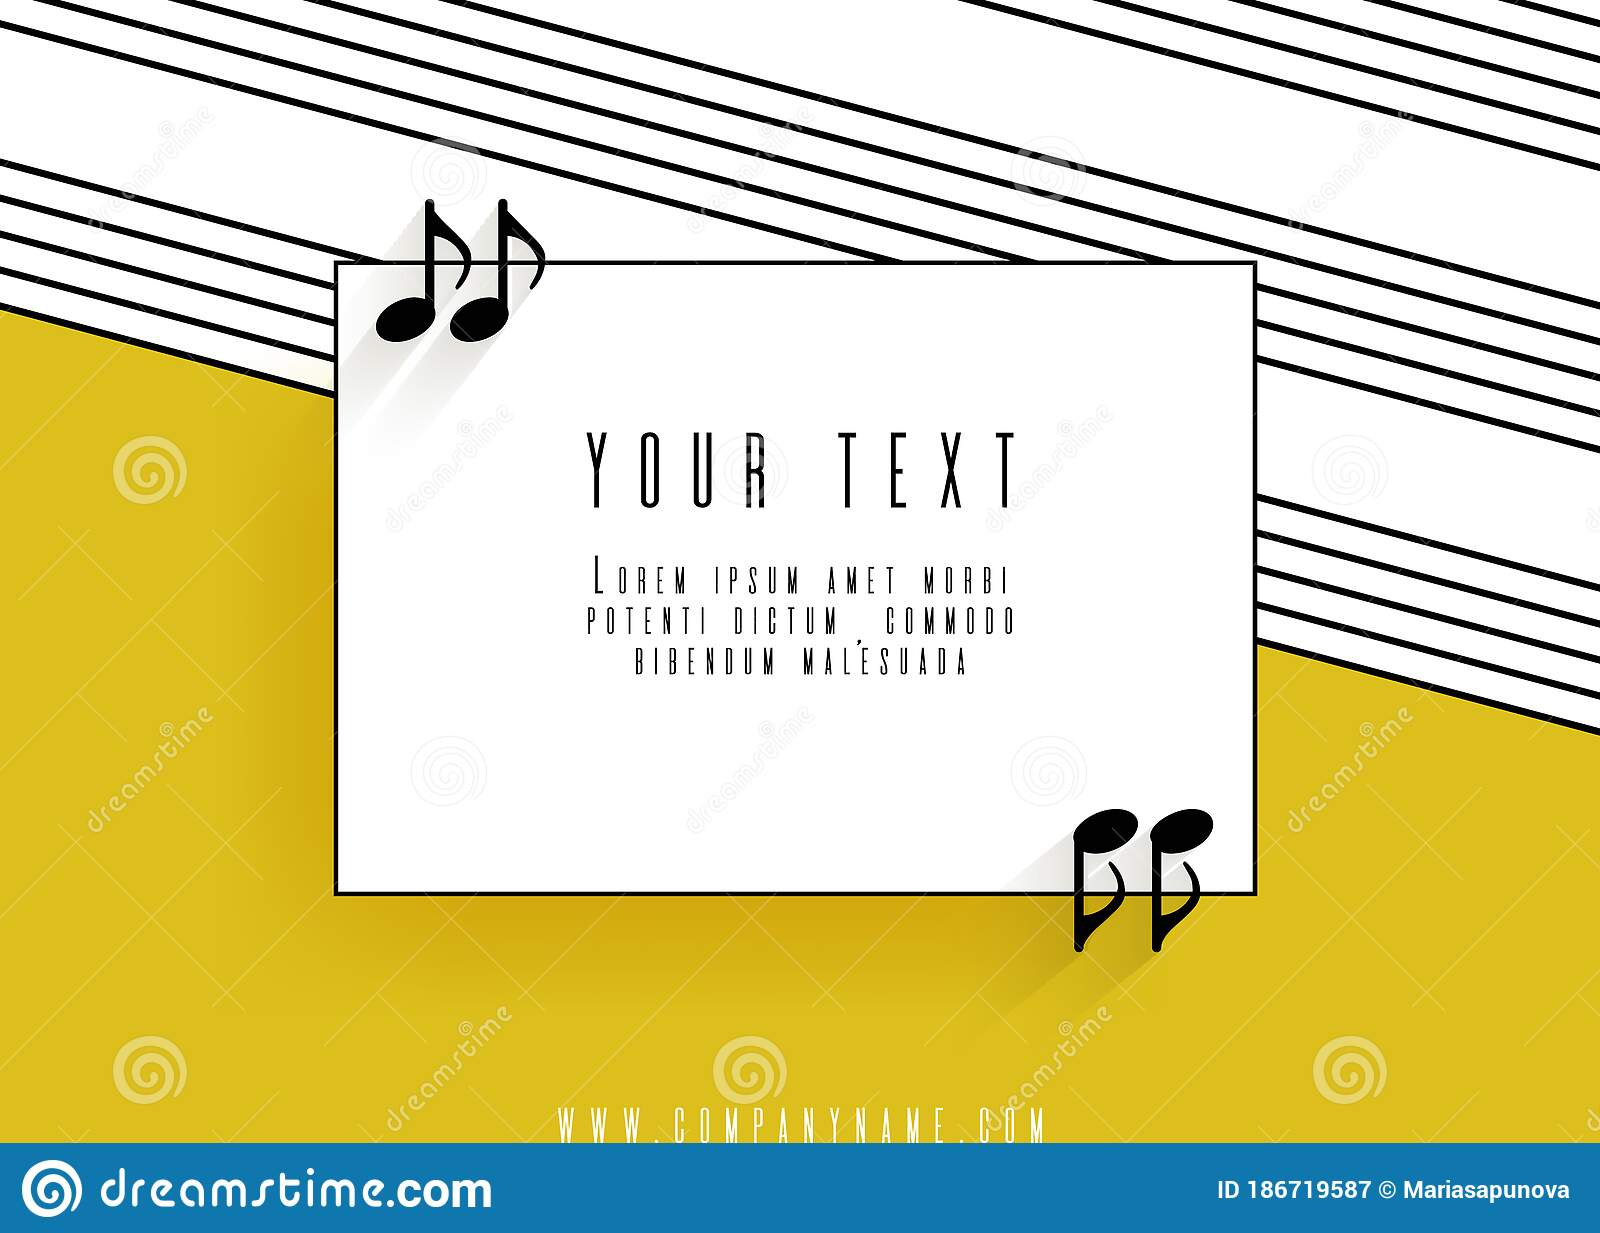 Quotes In The Form Of Musical Notes In A Frame Stock Vector Illustration Of Citation Contact 186719587